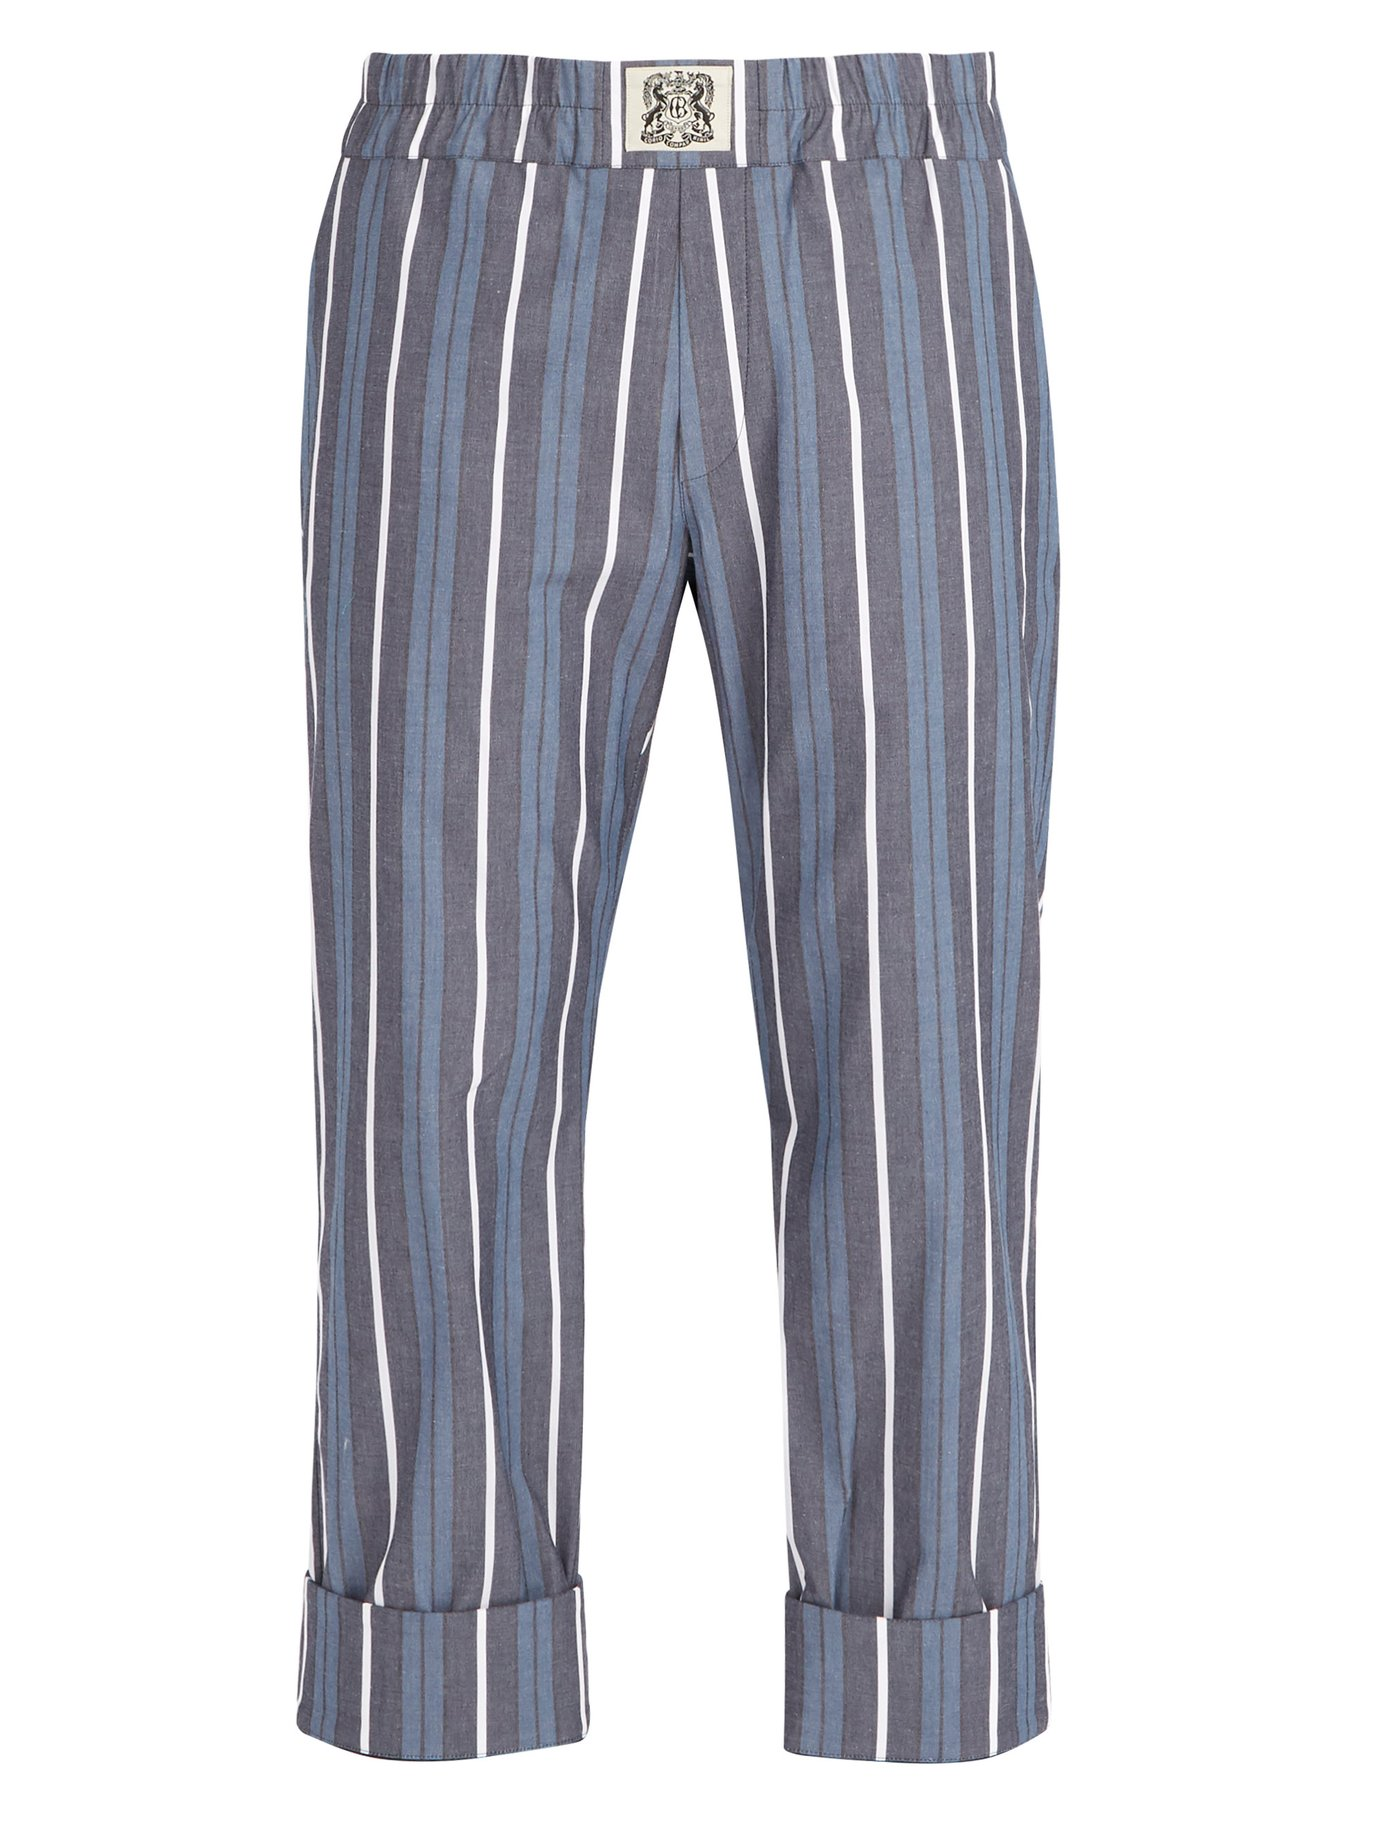 CONNOLLY STRIPED COTTON BLEND TROUSERS